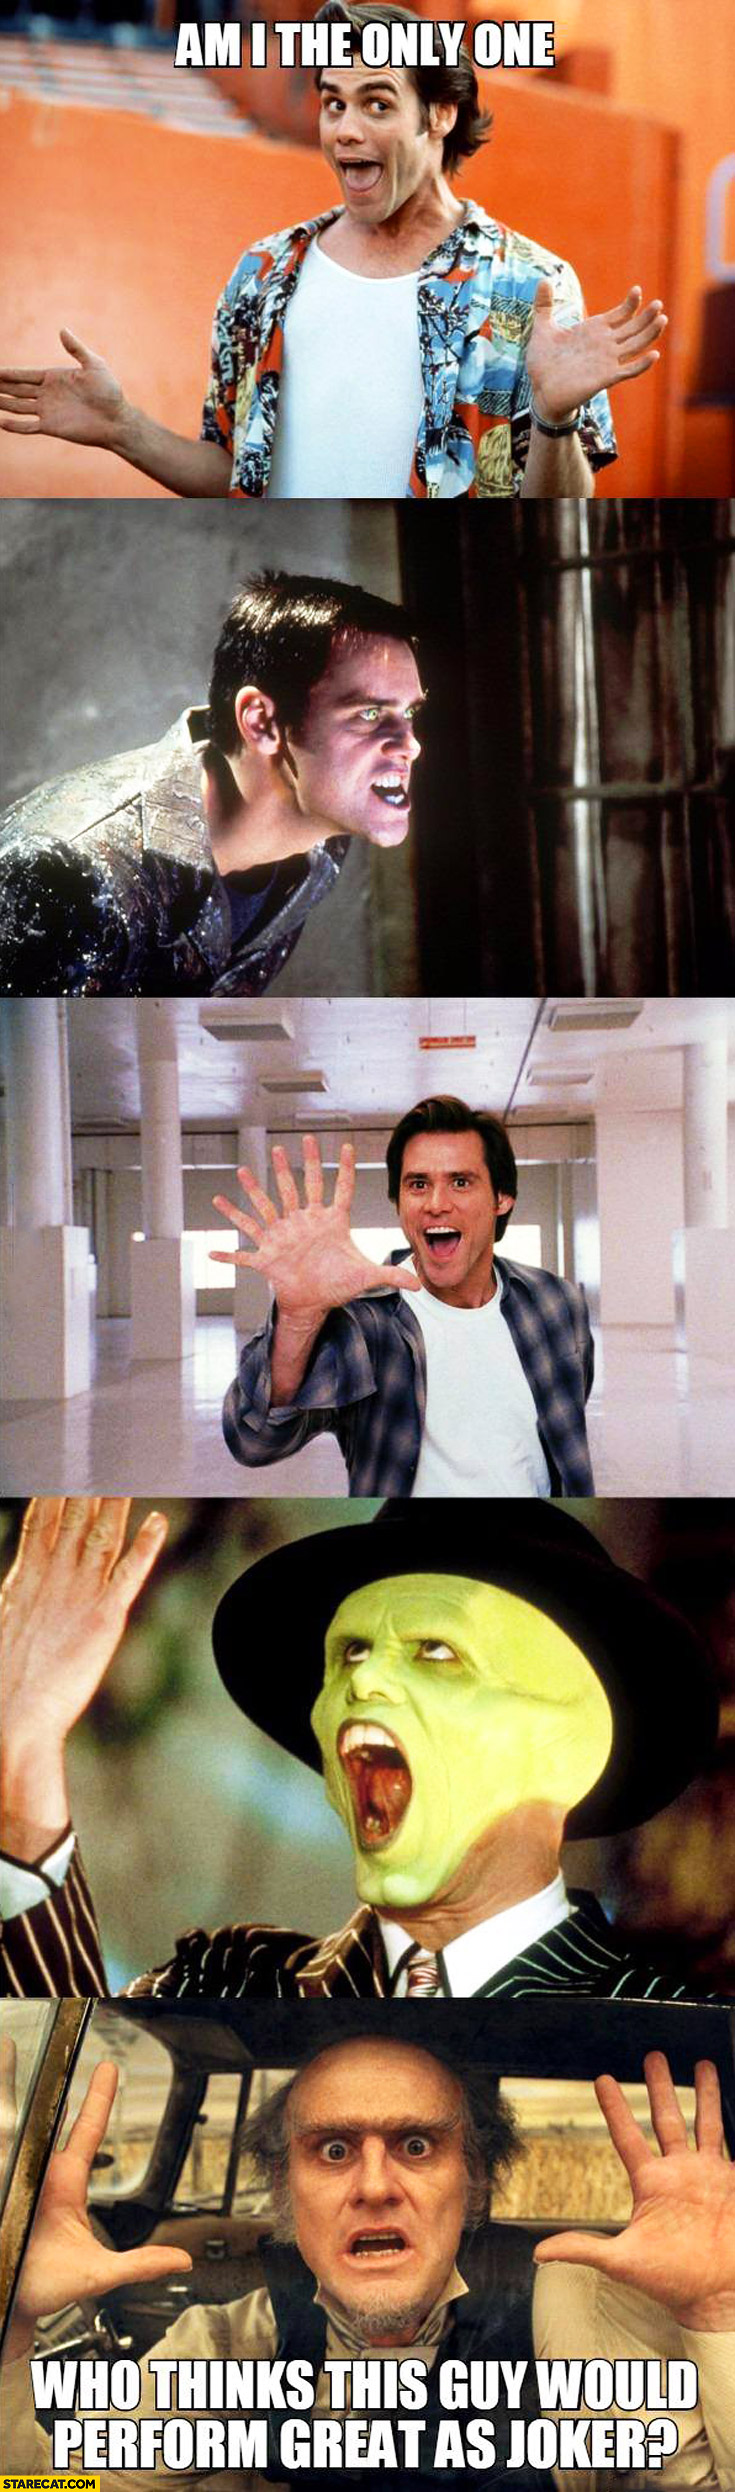 Jim Carrey am I the only one who thinks he would perform great as Joker